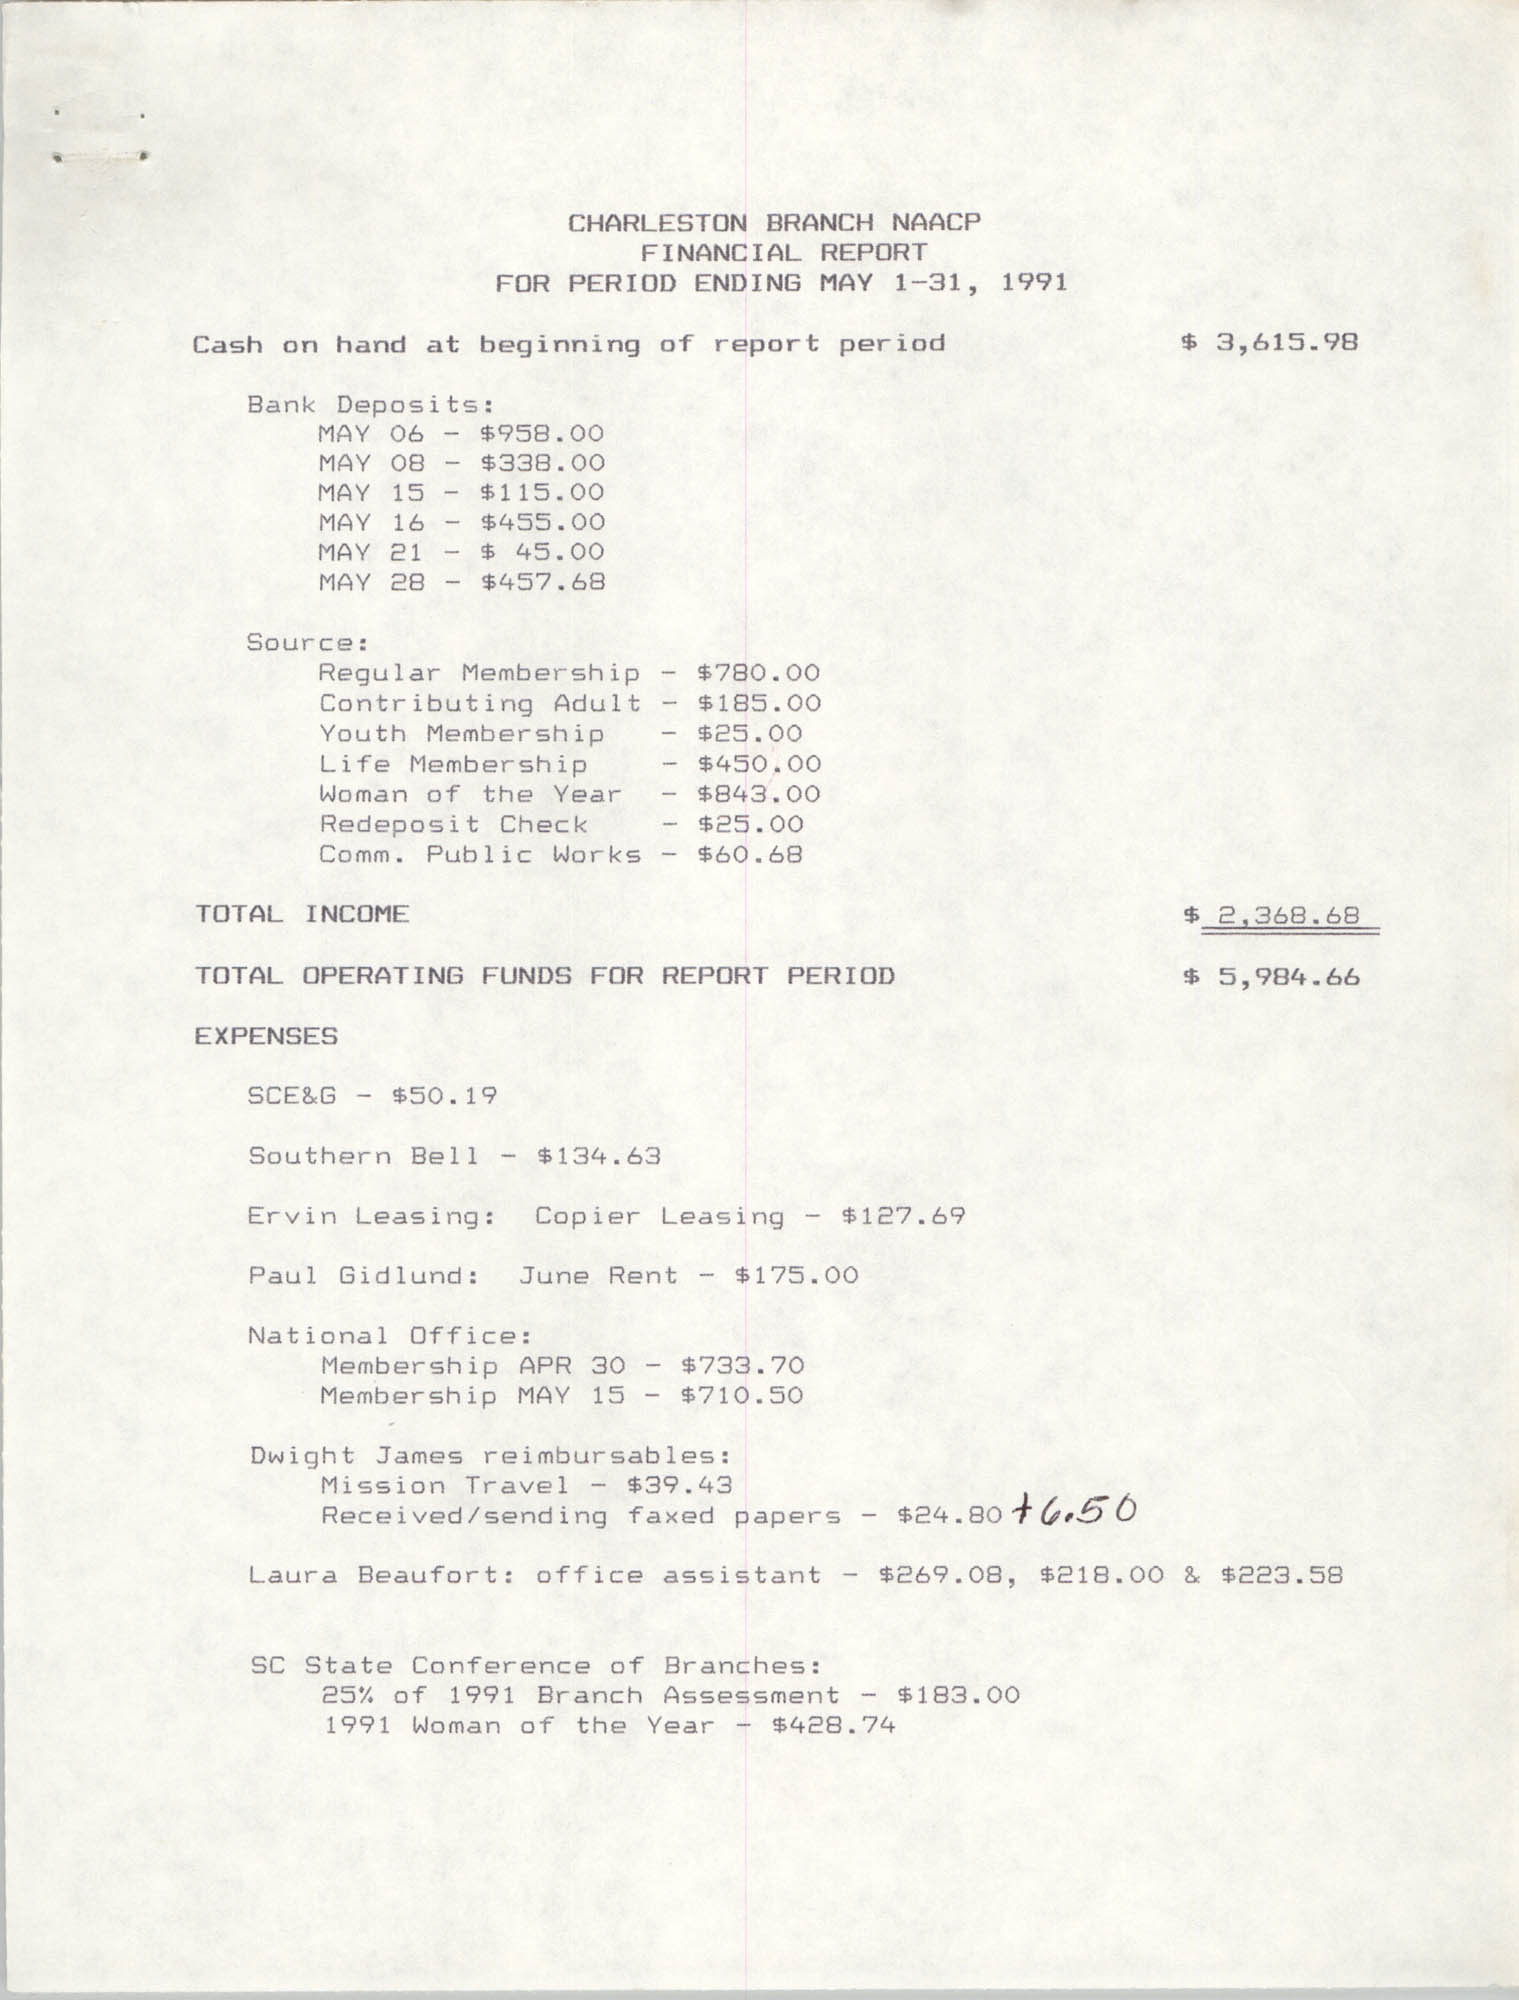 Charleston Branch of the NAACP Financial Report, May 1991, Page 1